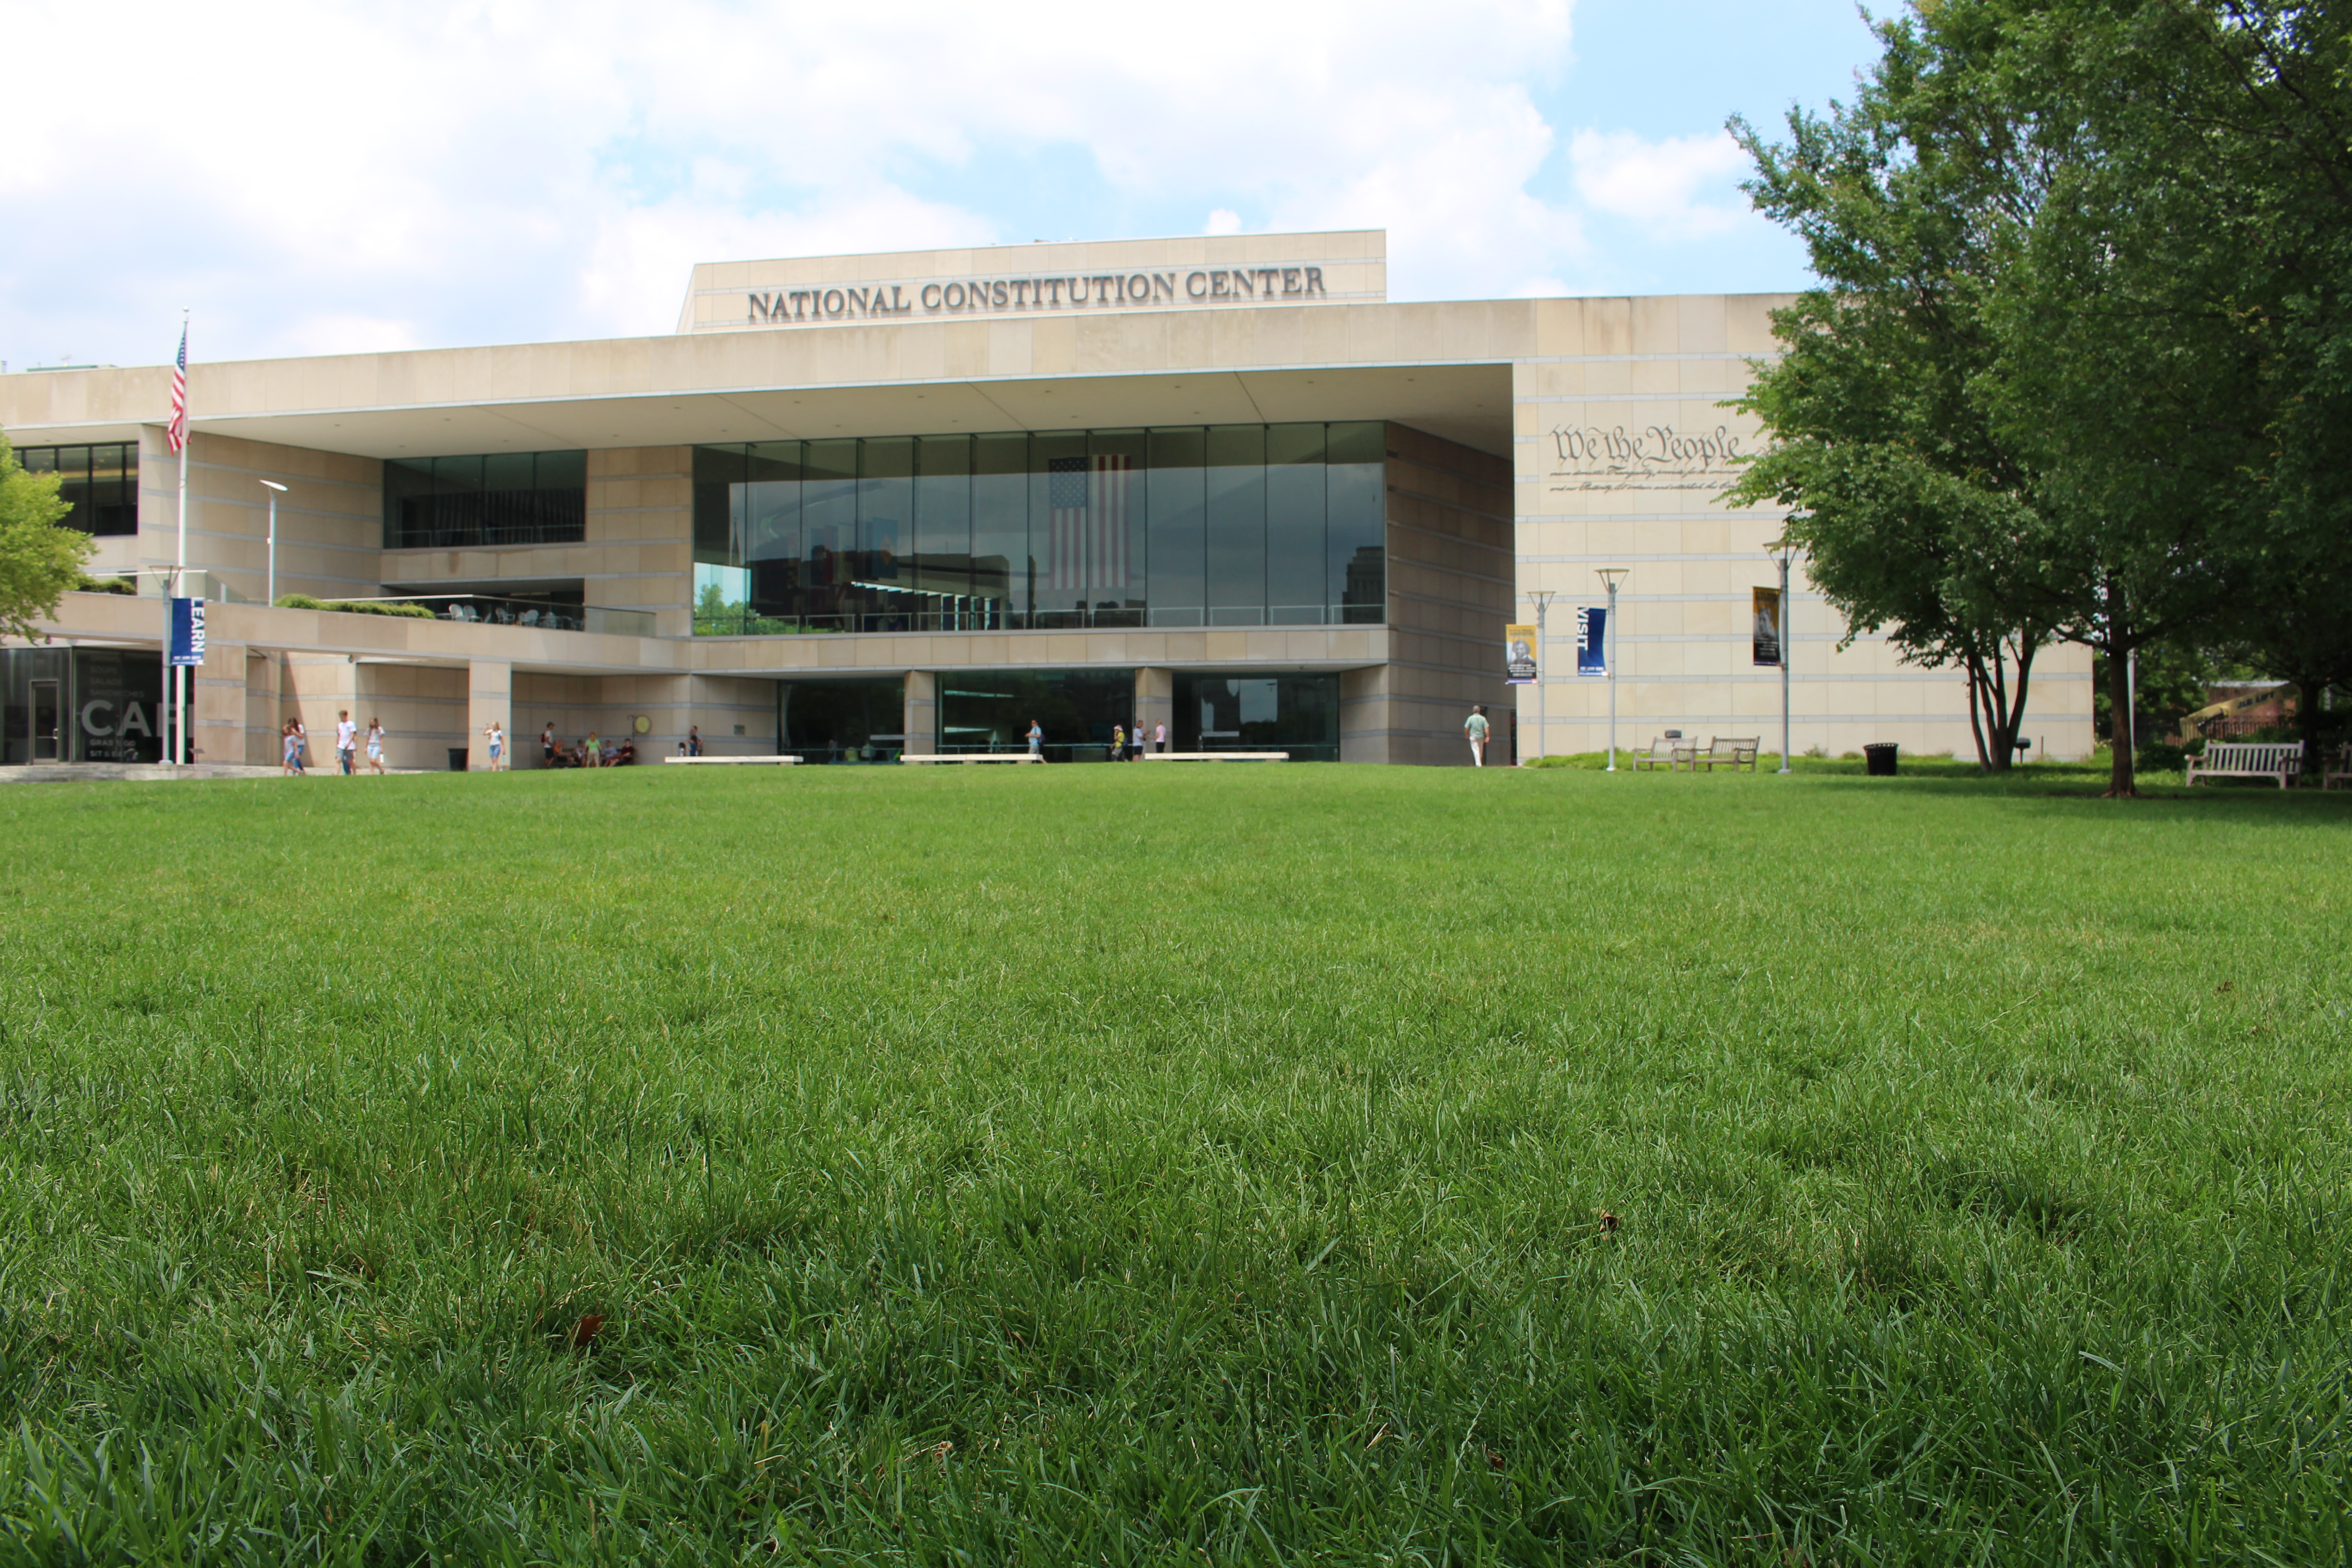 National Constitution Center - Wikipedia